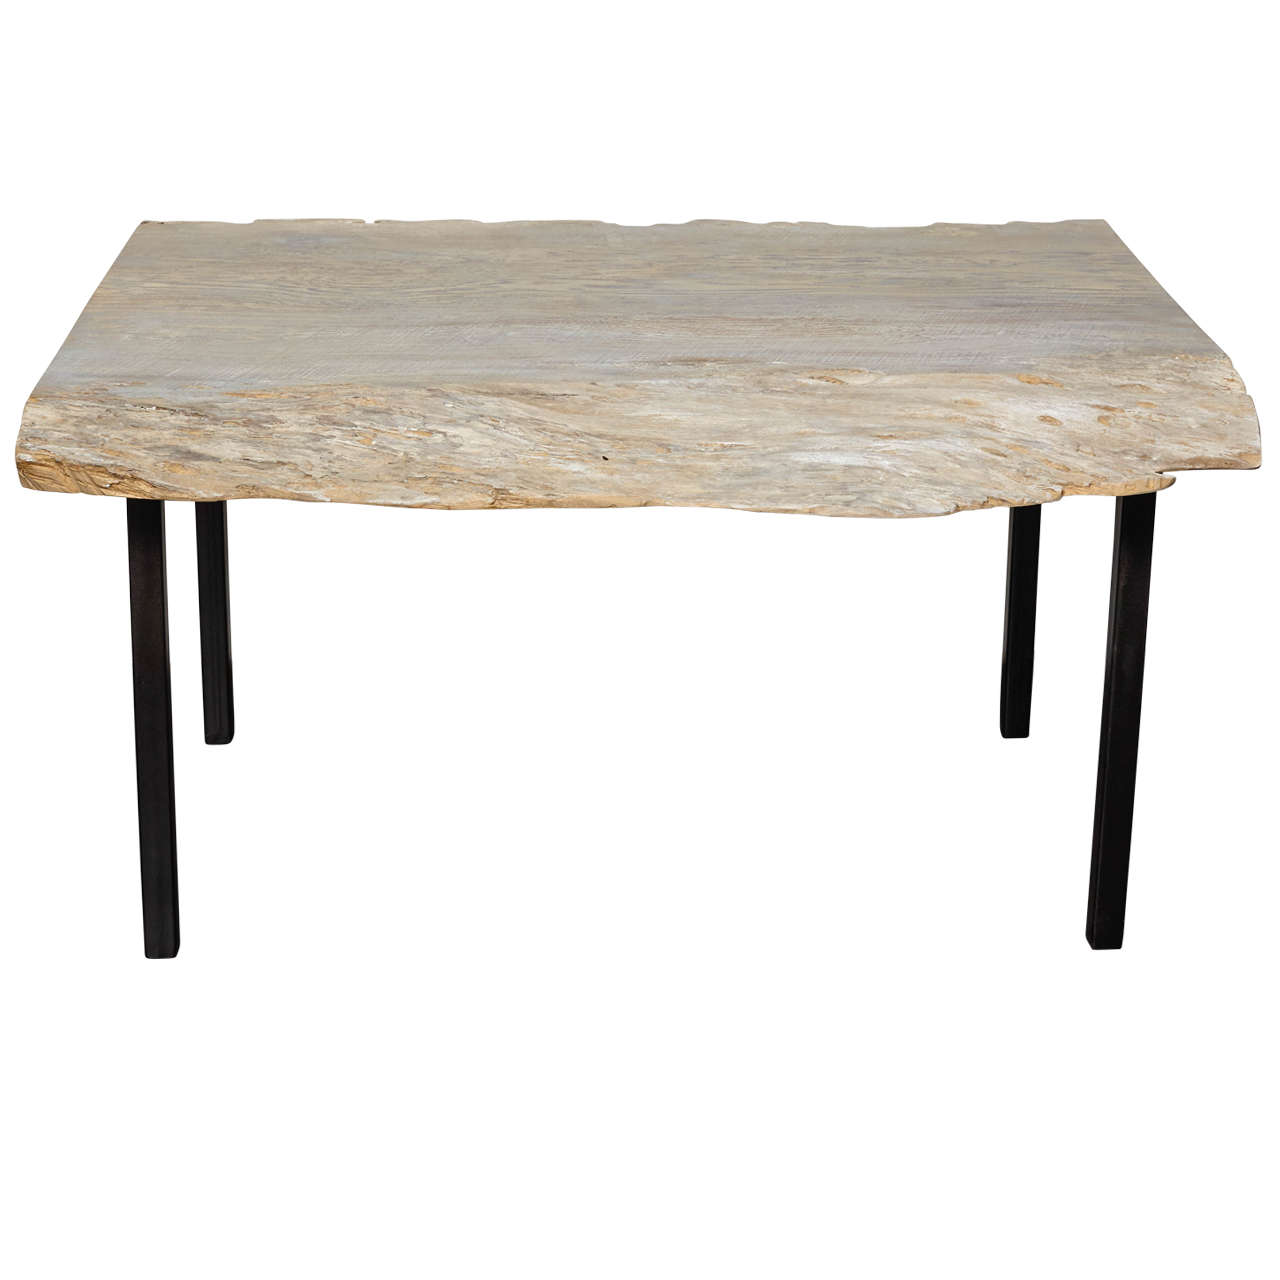 cypress tables - 26 for sale at 1stdibs